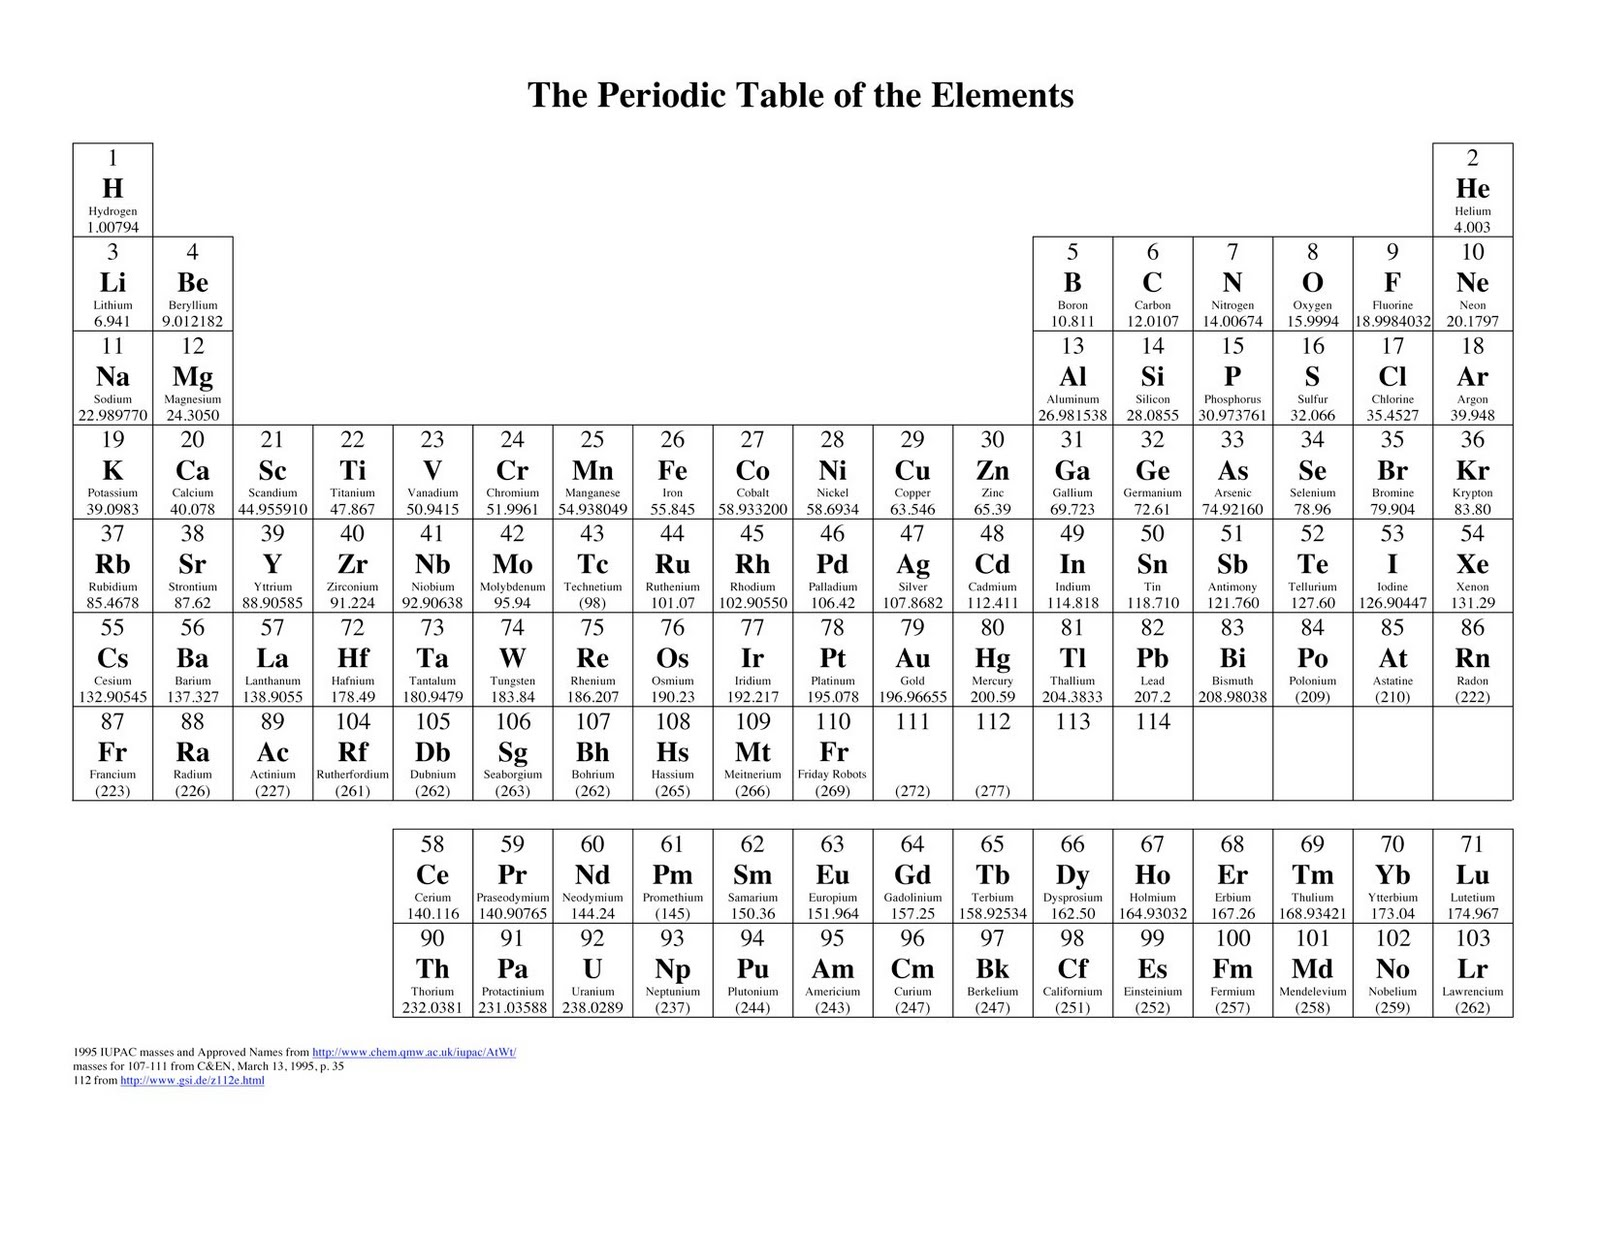 Periodic tables of the elements in american englishmichael canov amer10g biocorpaavc Images